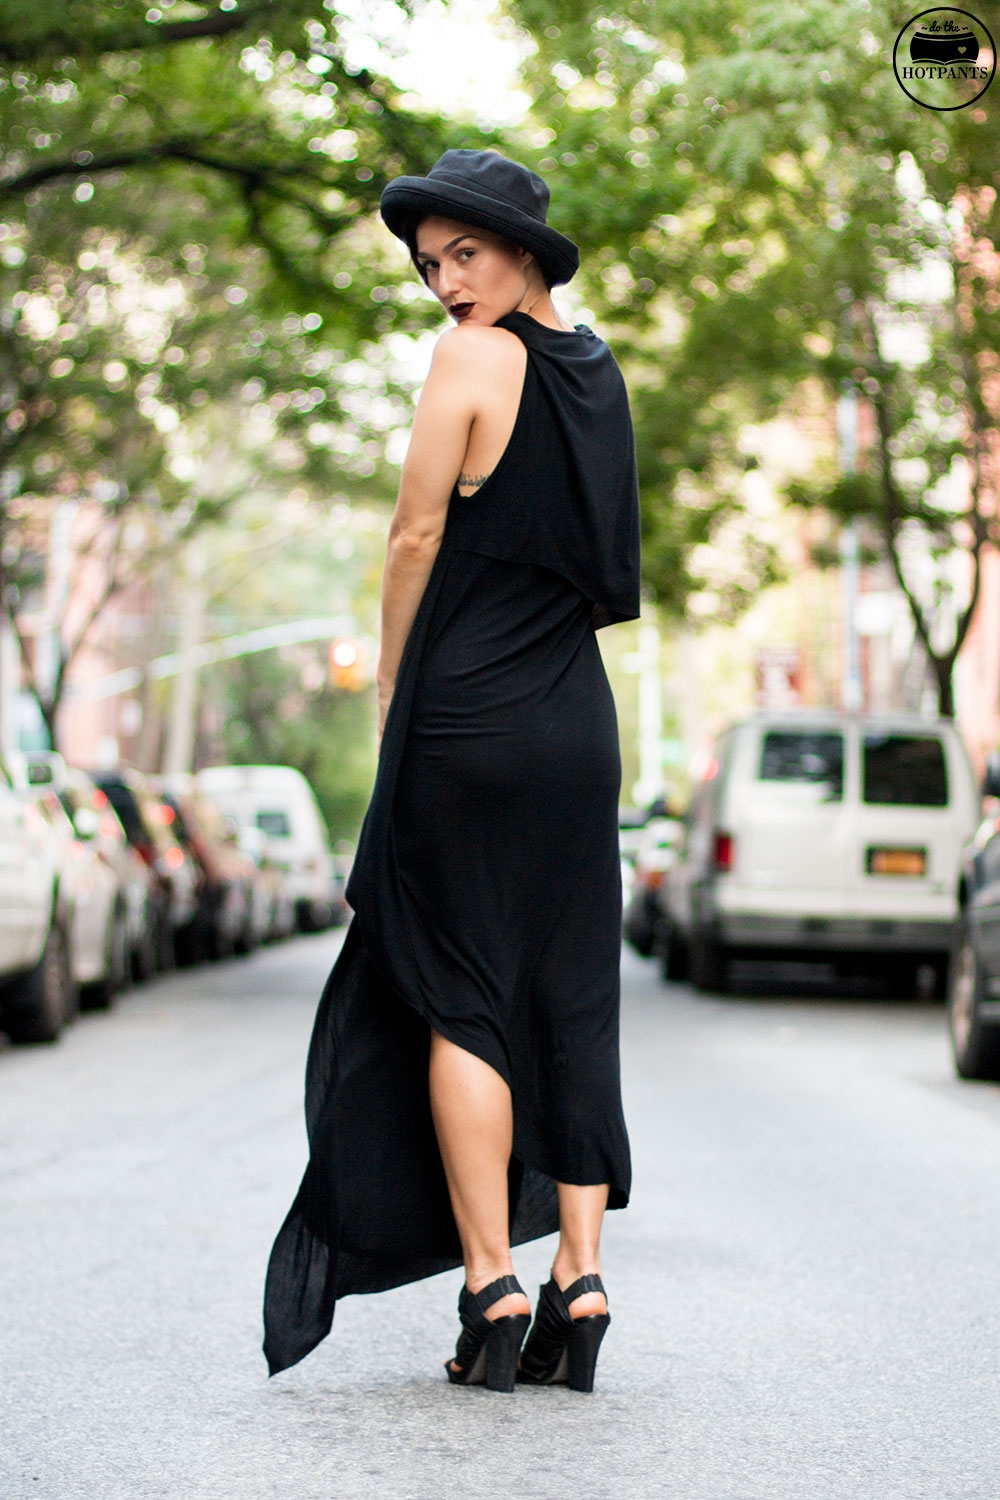 Do The Hotpants Dana Suchow Goth Streetstyle Fashion Black Maxi Dress Gothic Style MAC Dark Lipstick Fall Look IMG_2081